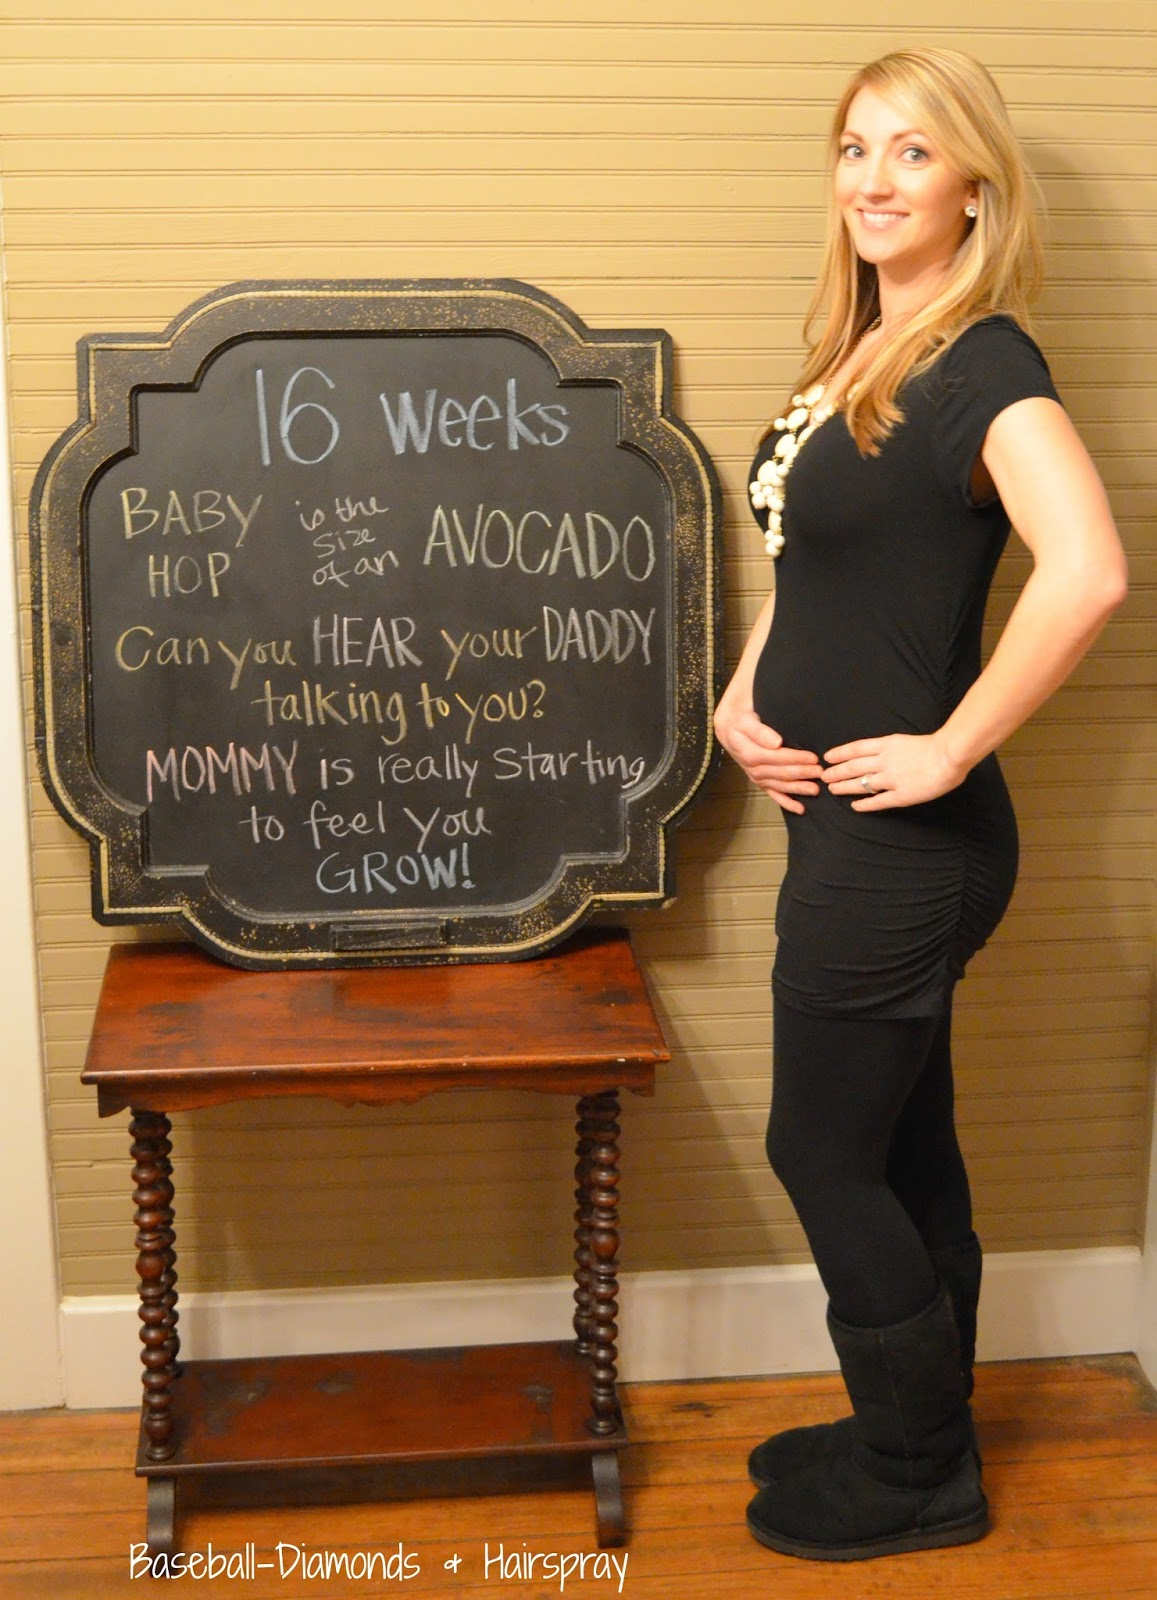 16 weeks belly pic chalkboard